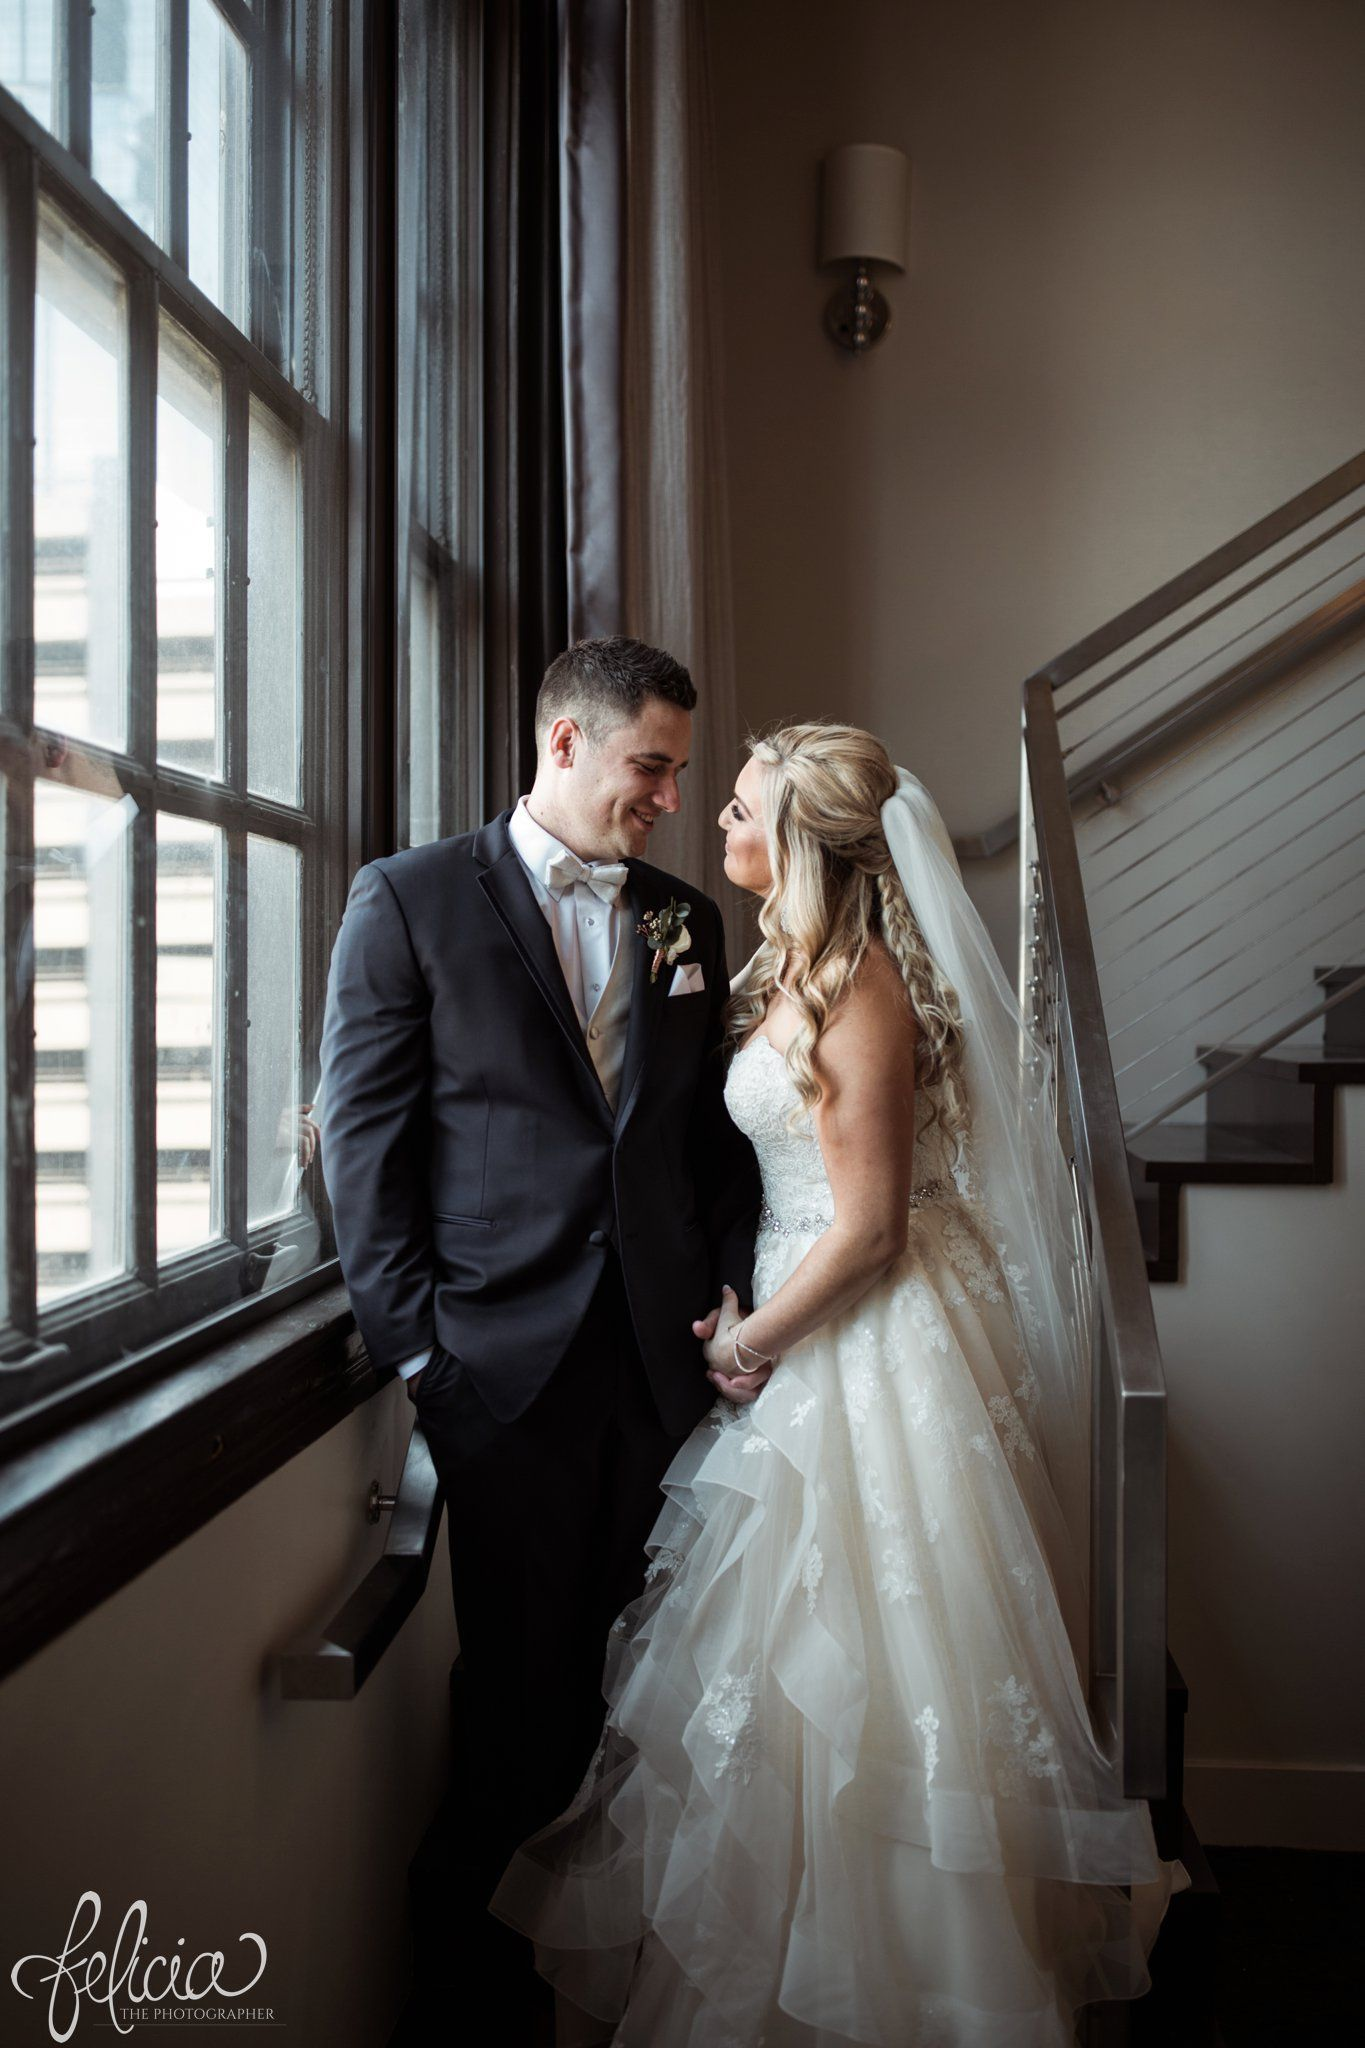 Bohemian Glam Wedding In The Heart Of Downtown Wedding Dresses Los Angeles Wedding Dresses Dress Cleaning